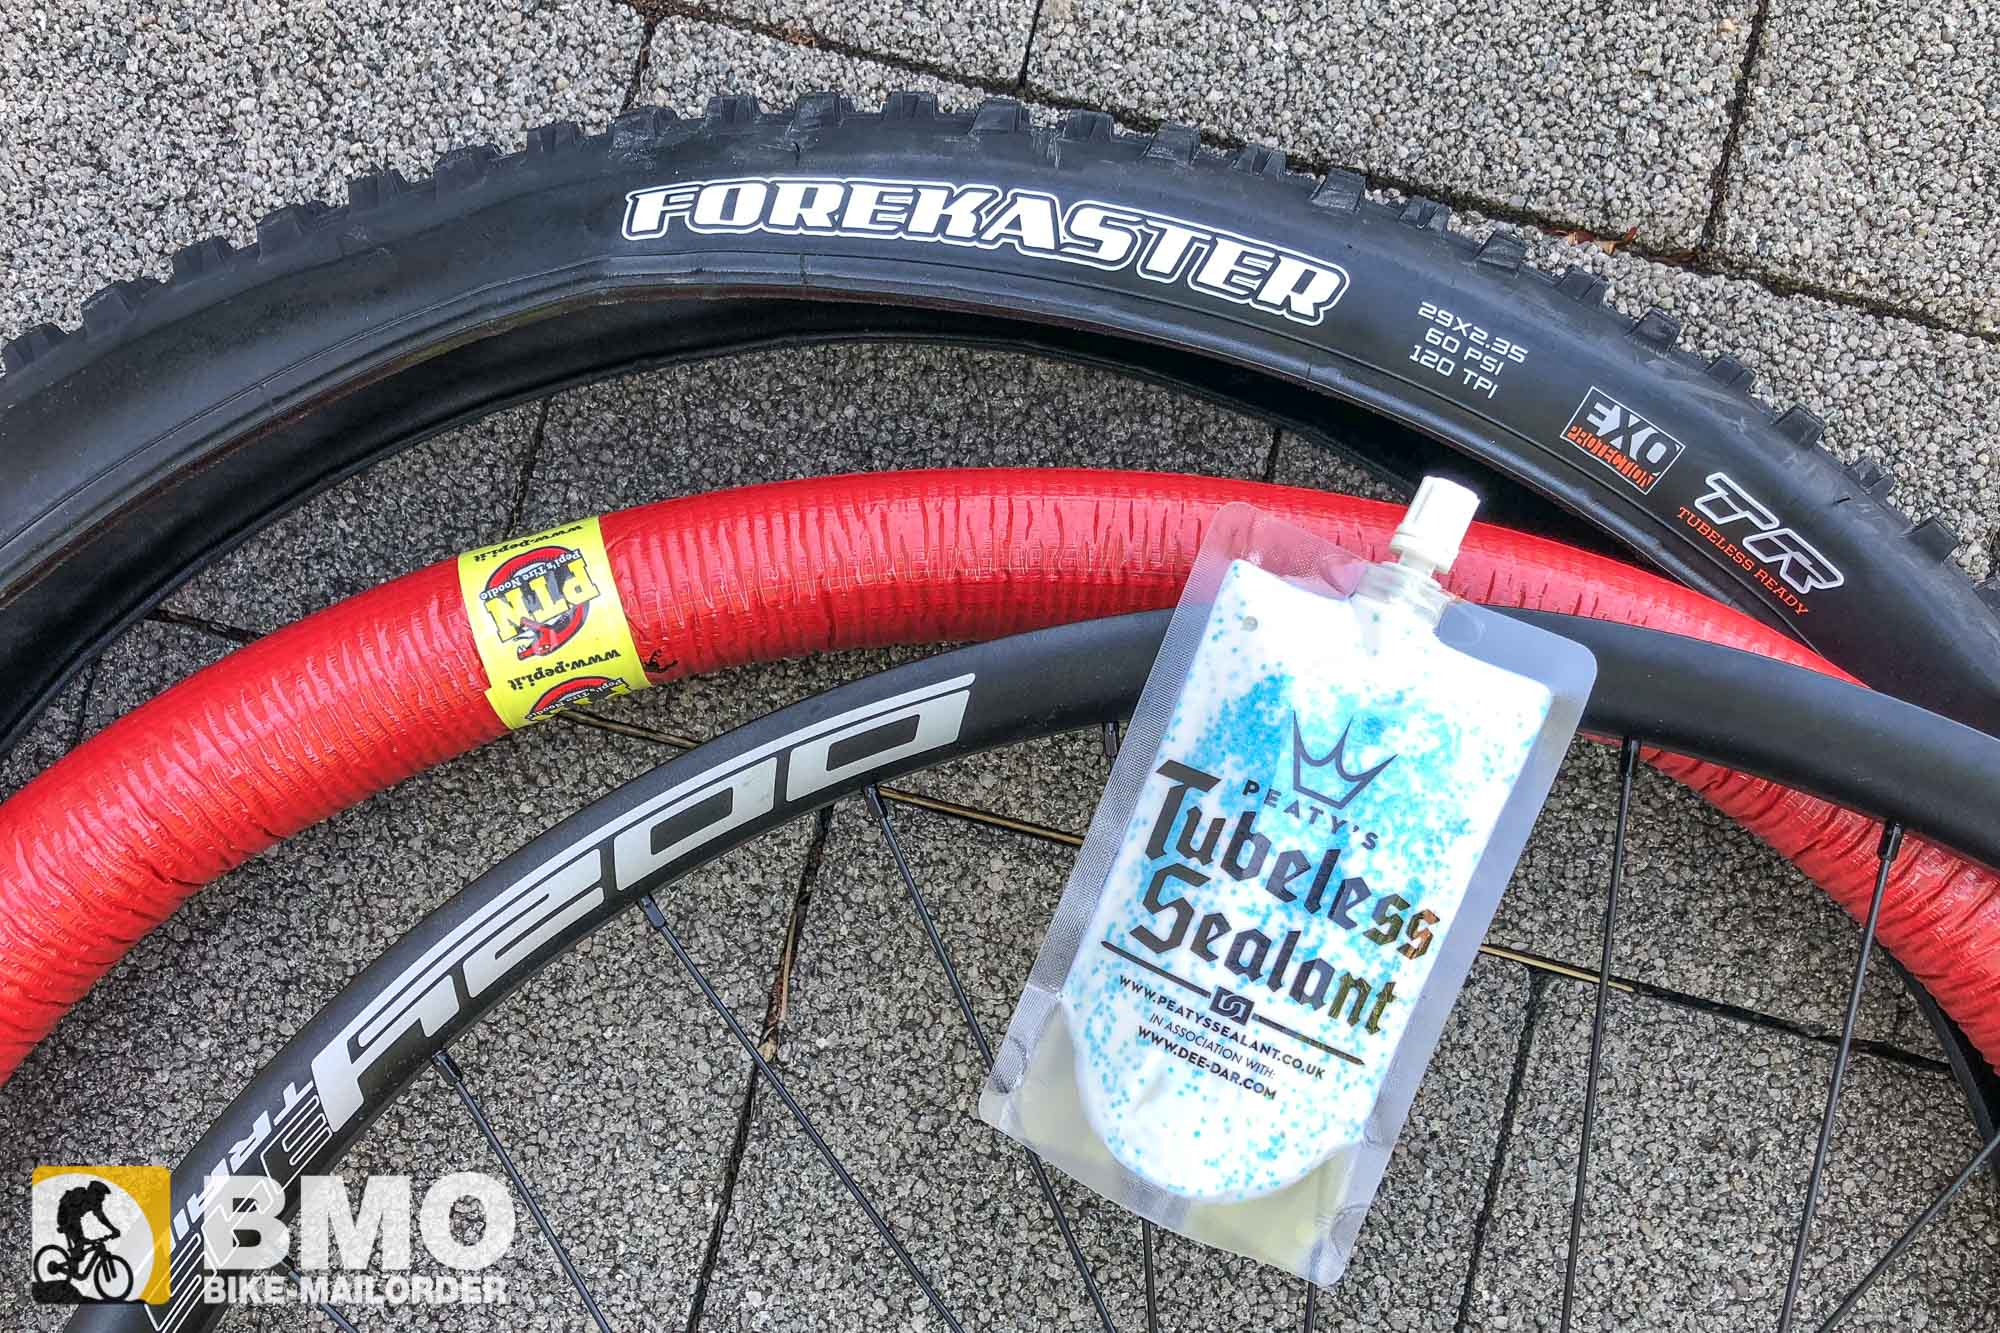 Bike-Mailorder-Pepis-Tire-Noodle-Test-5